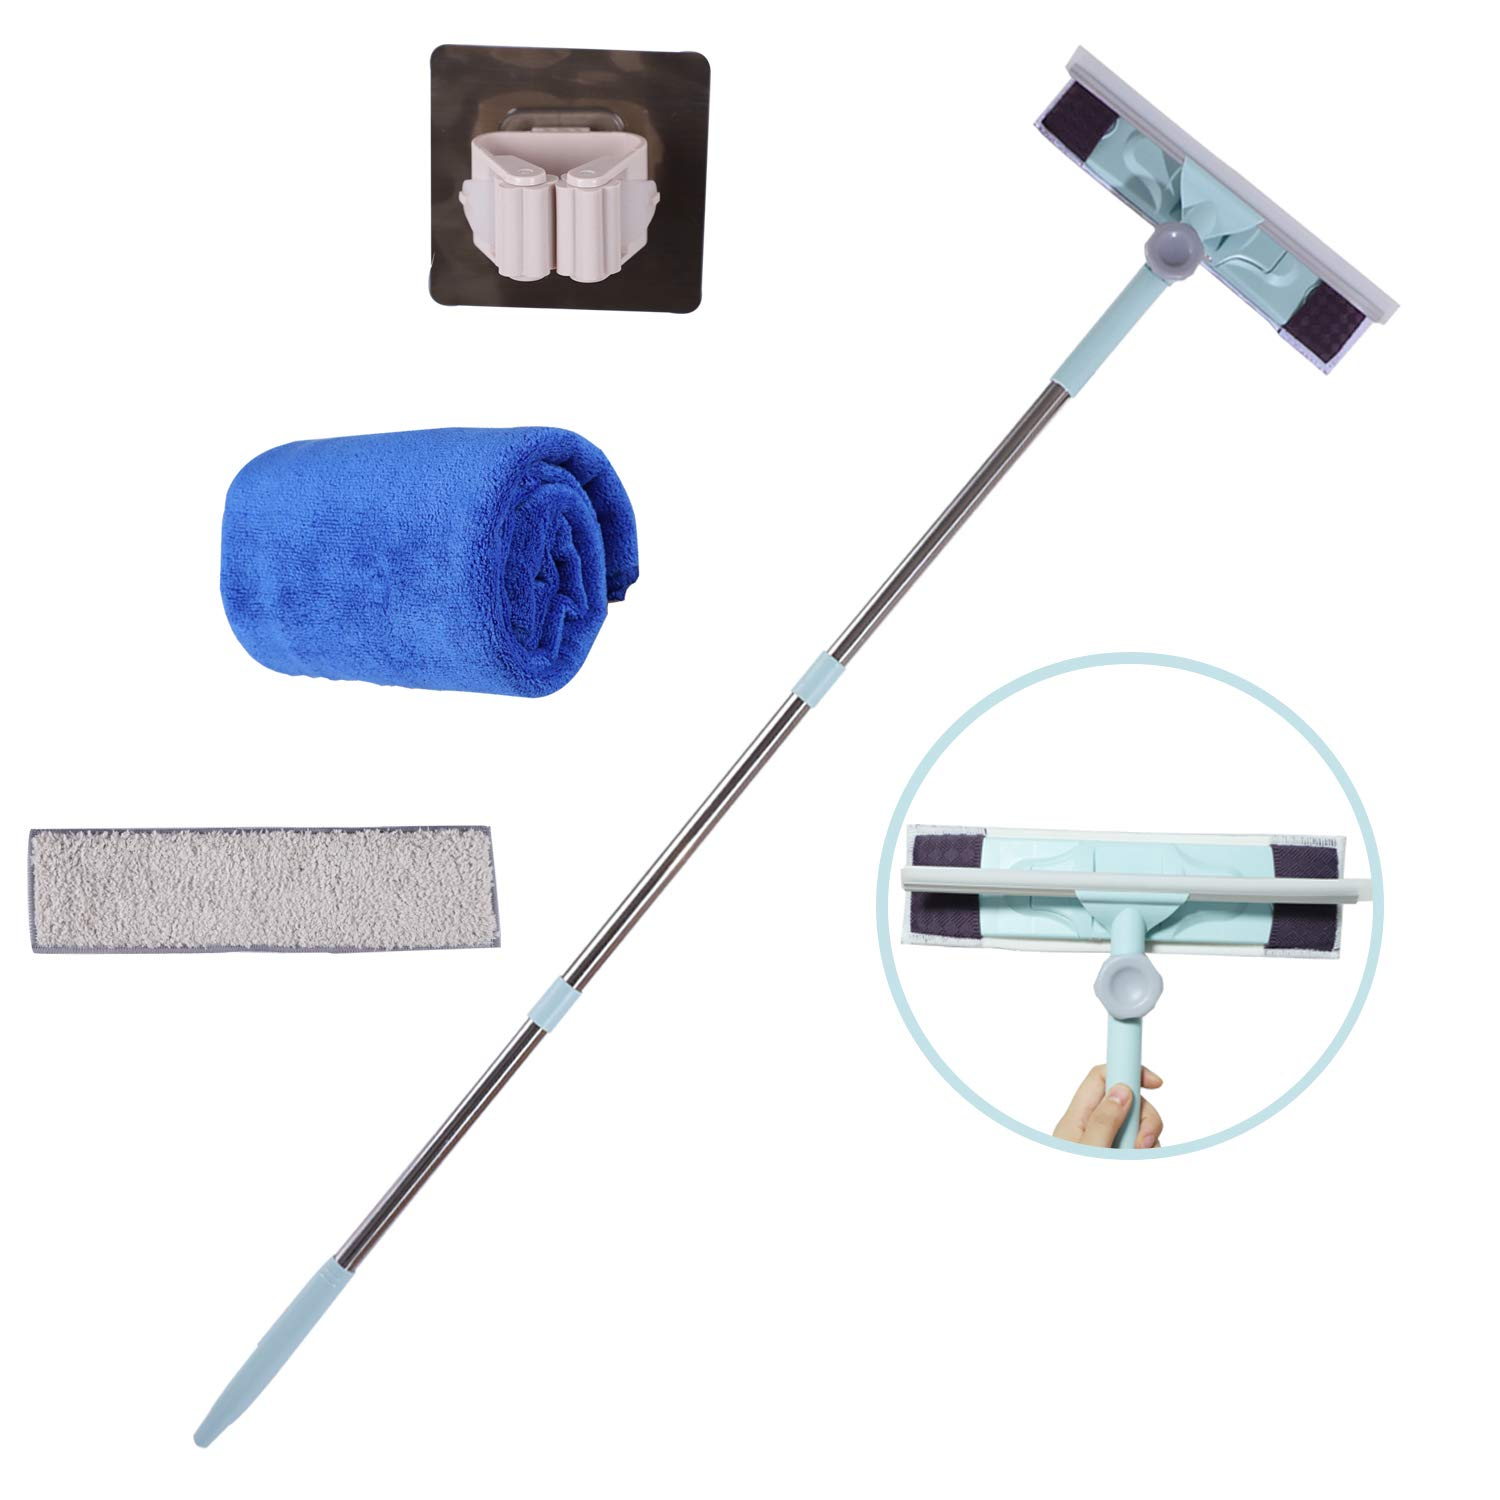 Midoneat 4 feet Squeegee and Microfiber Window Scrubber,Squeegee Cleaning kit,Window and Glass Cleaning kit,Including Microfiber Pad and Microfiber Dusting Towel and Window Cleaner Holder